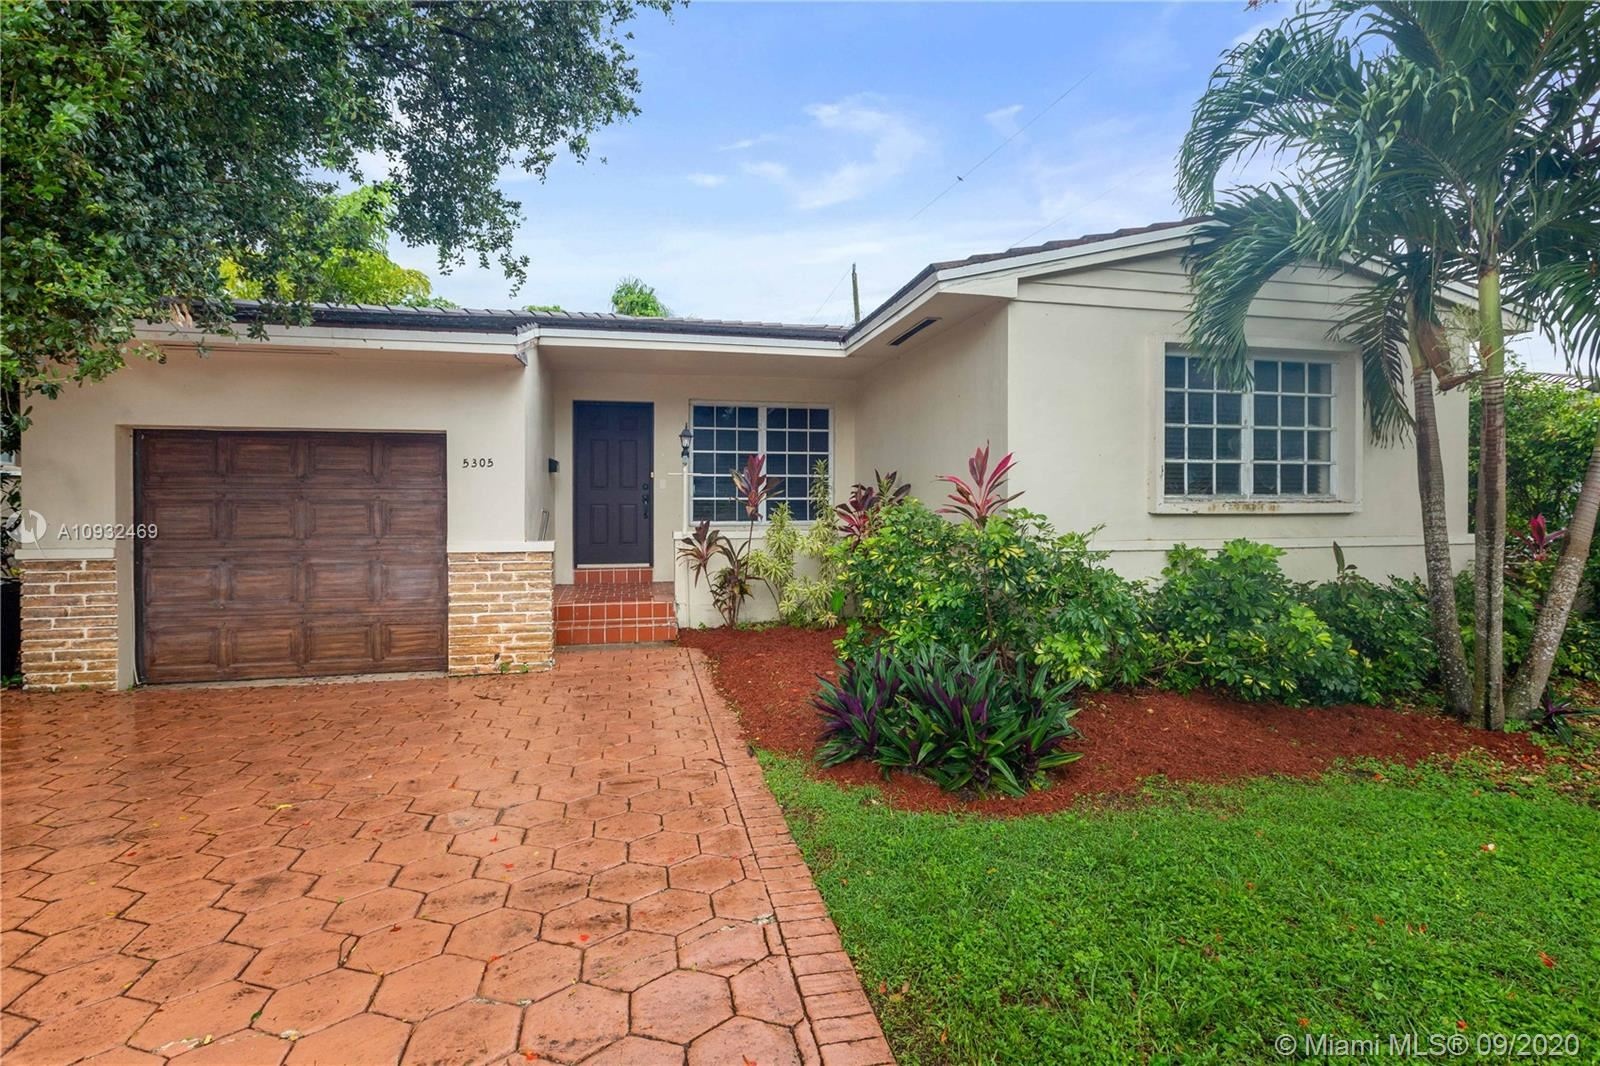 5305 Red Rd, Coral Gables, FL 33146 - #: A10932469